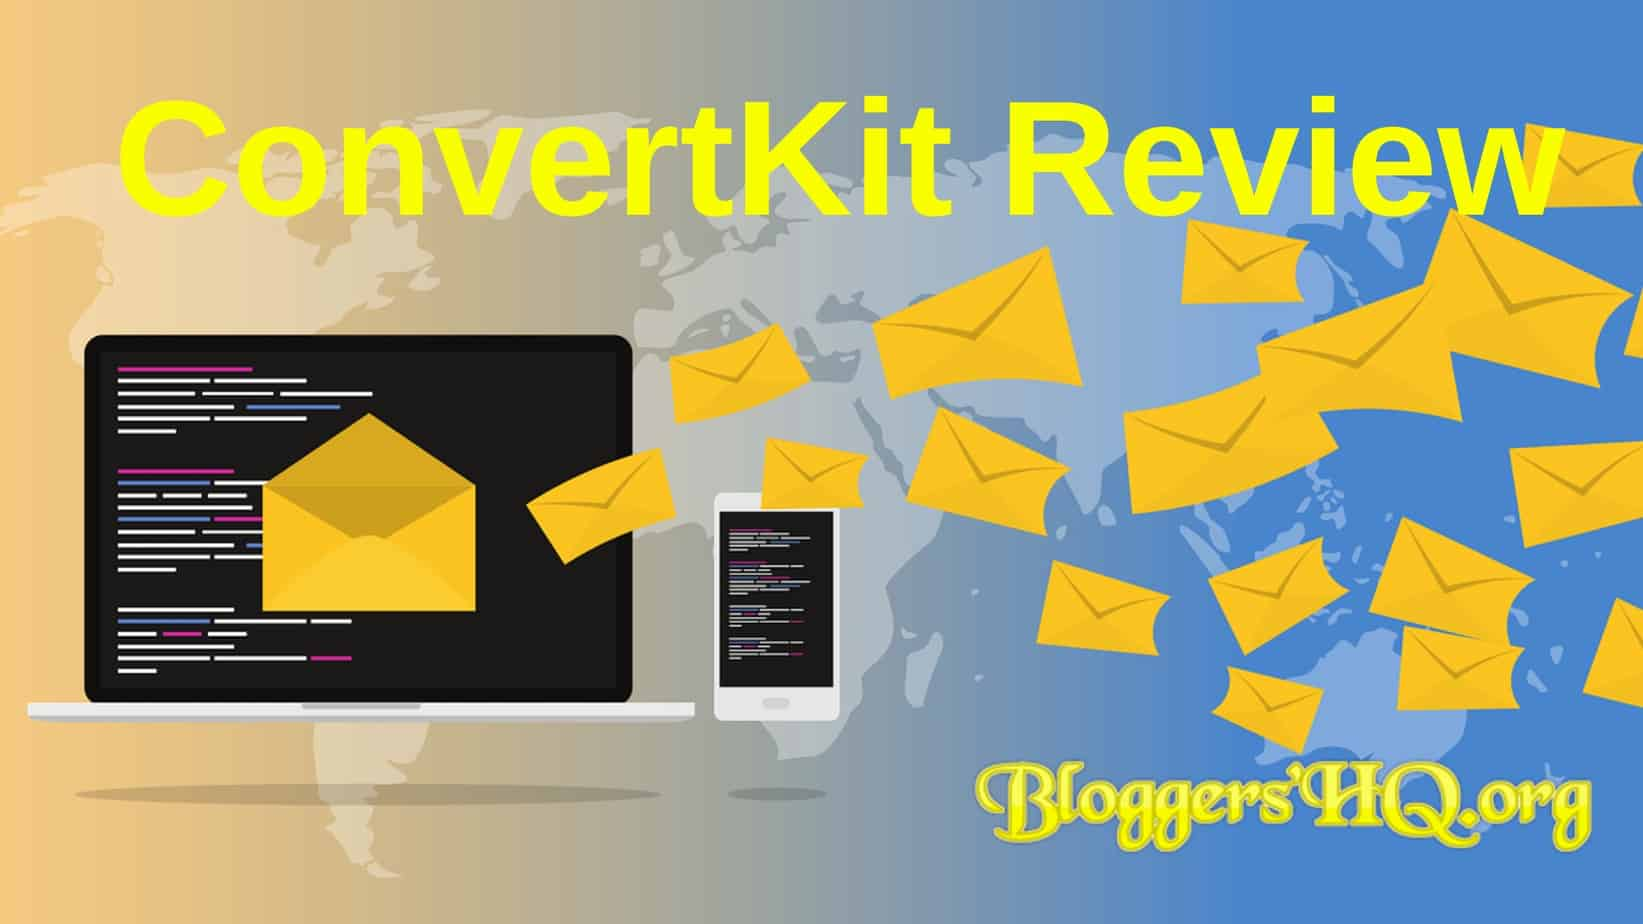 Getting Convertkit